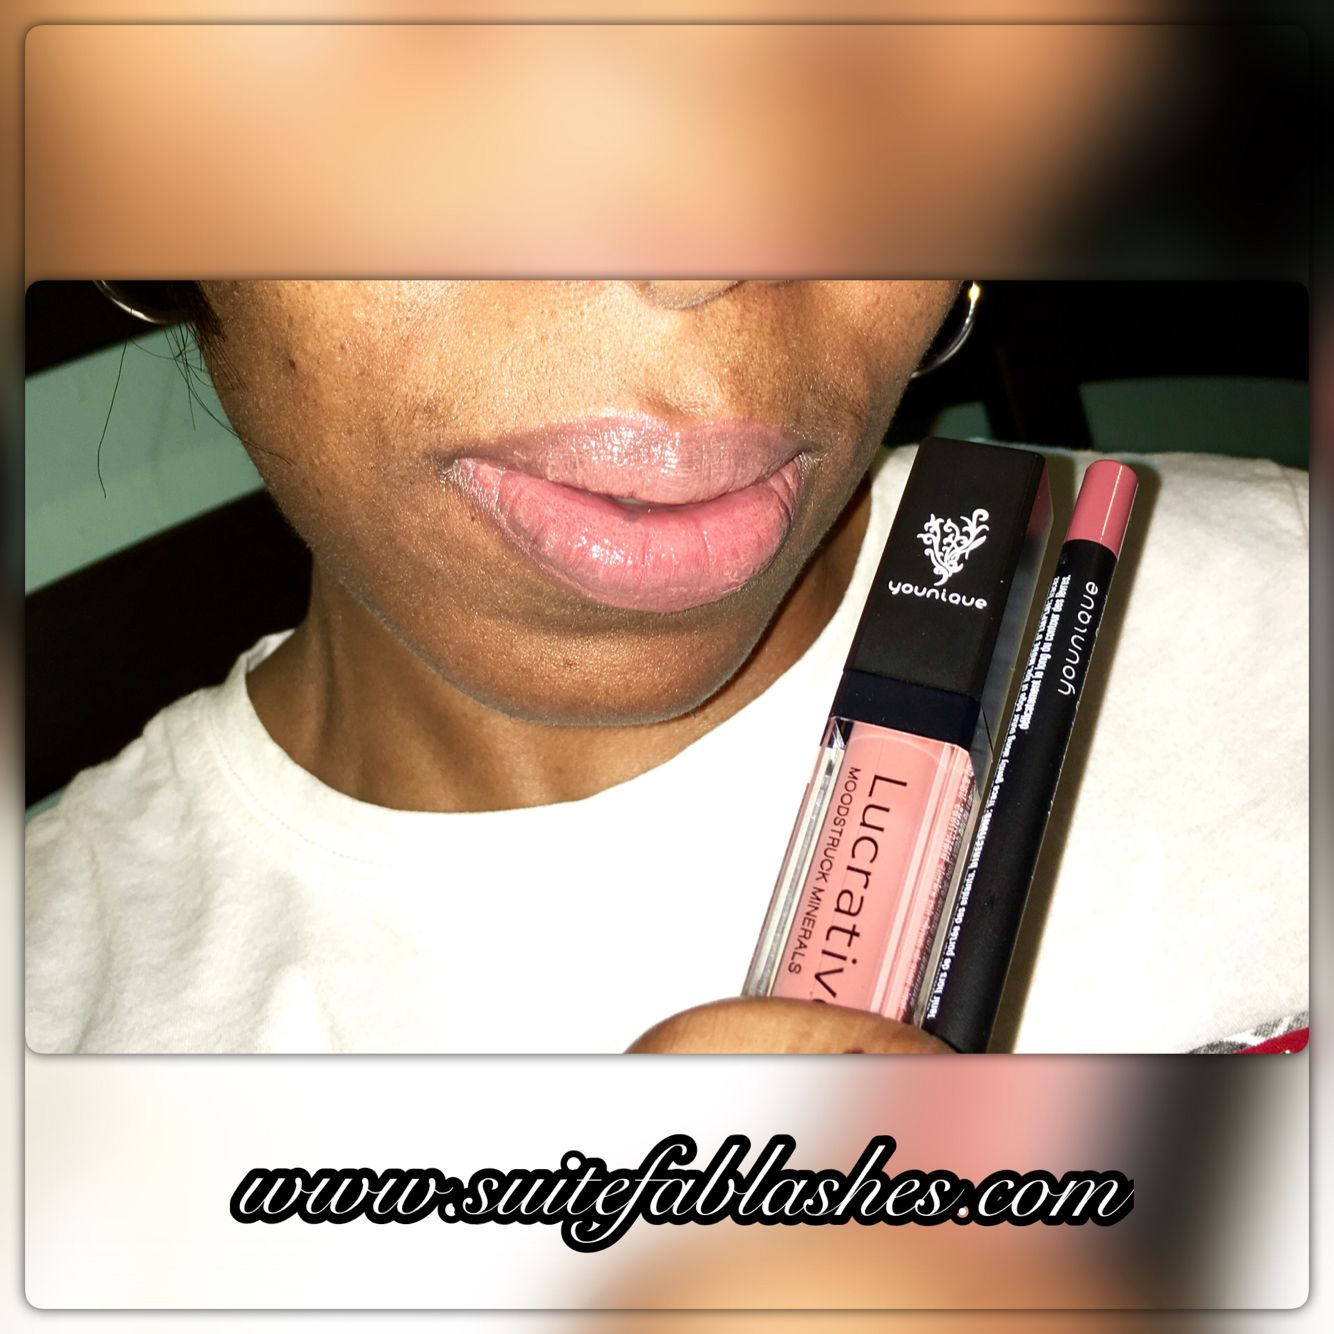 Moodstruck Minerals Lucrative Lipgloss in Luxe combined with Moodstruck Precision Pencil in Pouty! Shop www.suitefablashes.com for this look!!